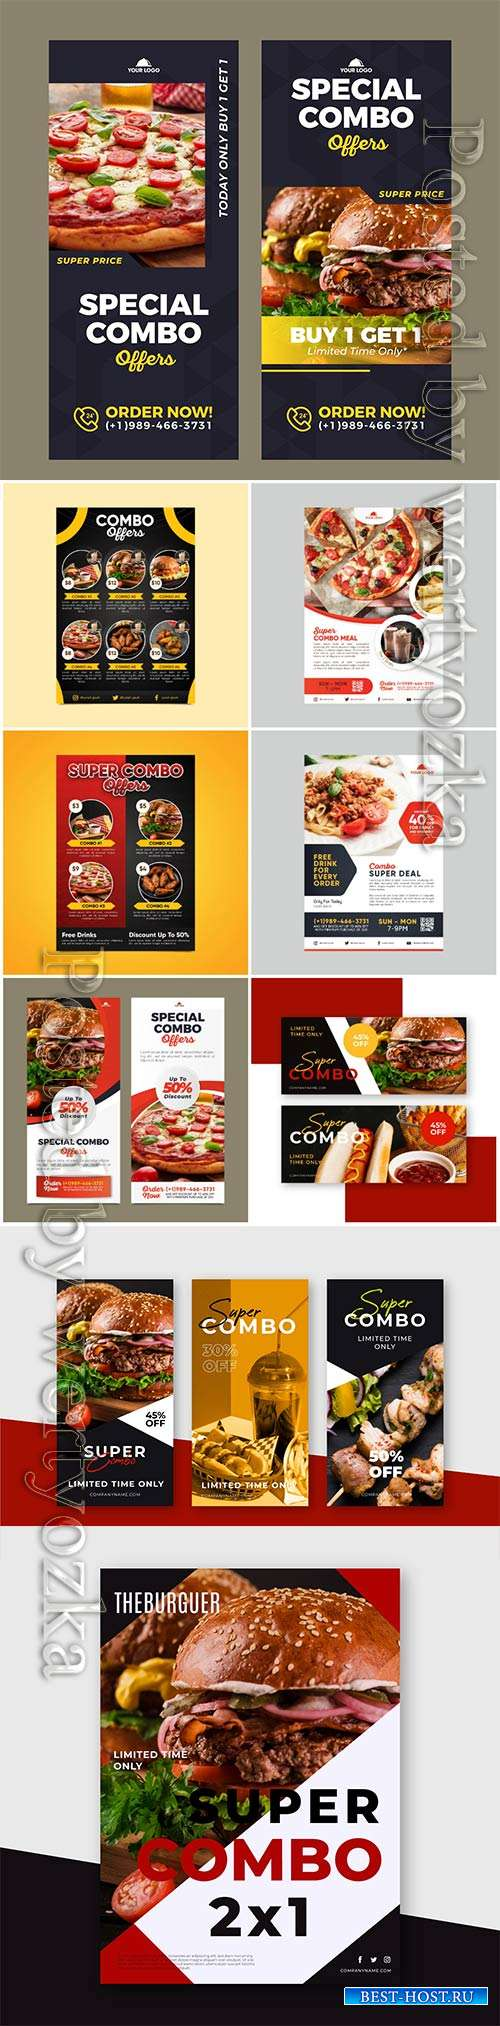 Combo meals discount poster template